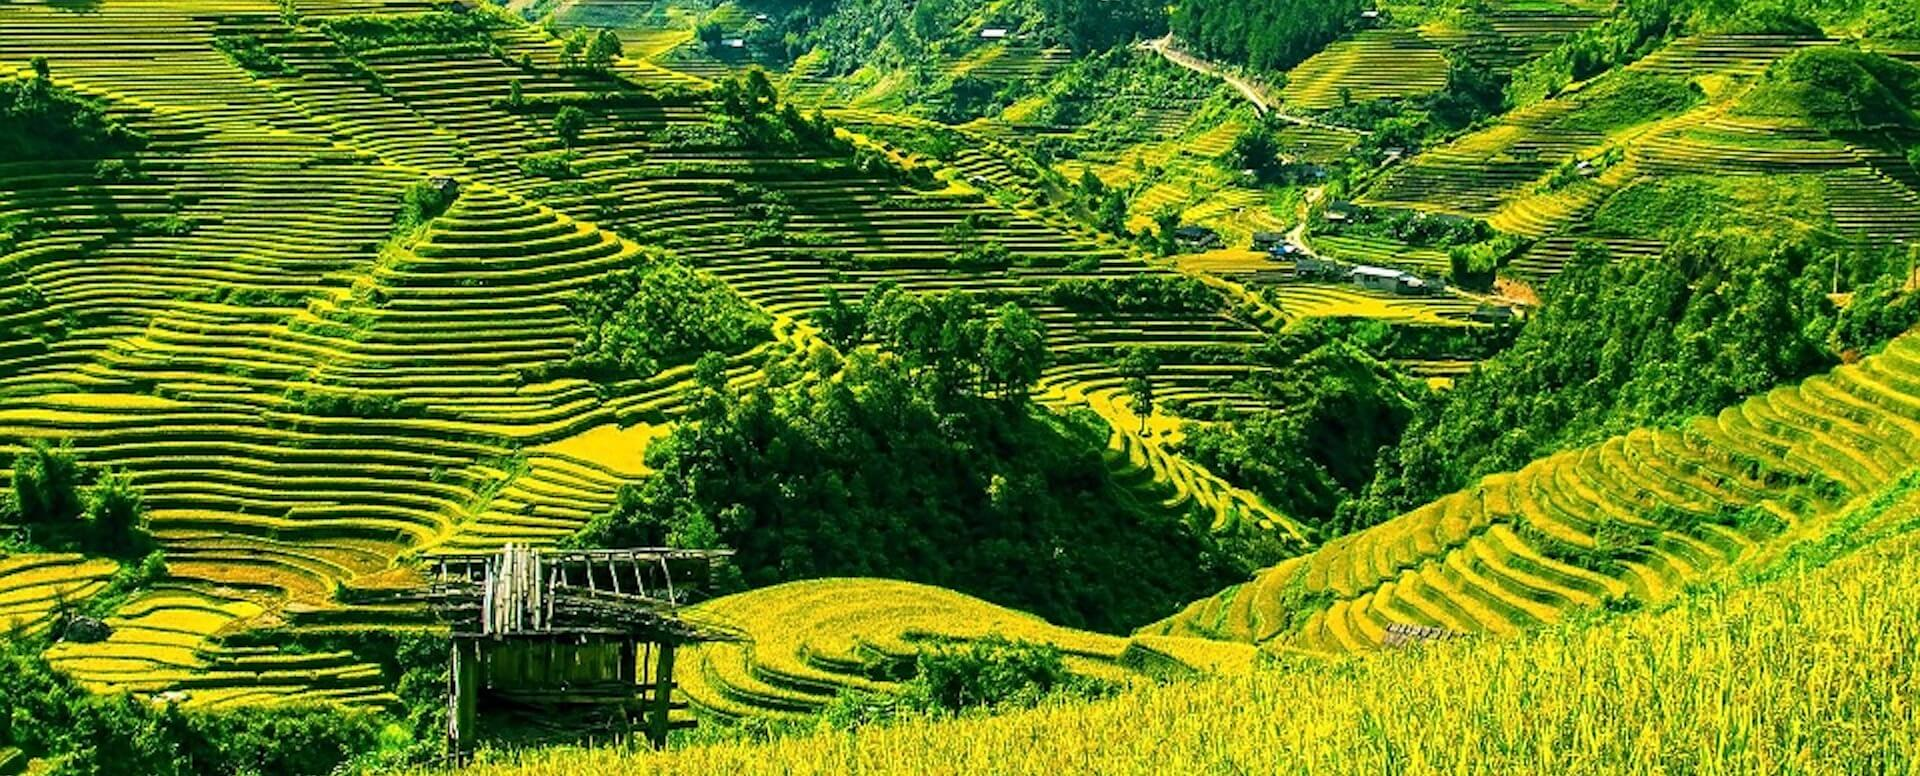 Landscapes of rice fields - Indonesia